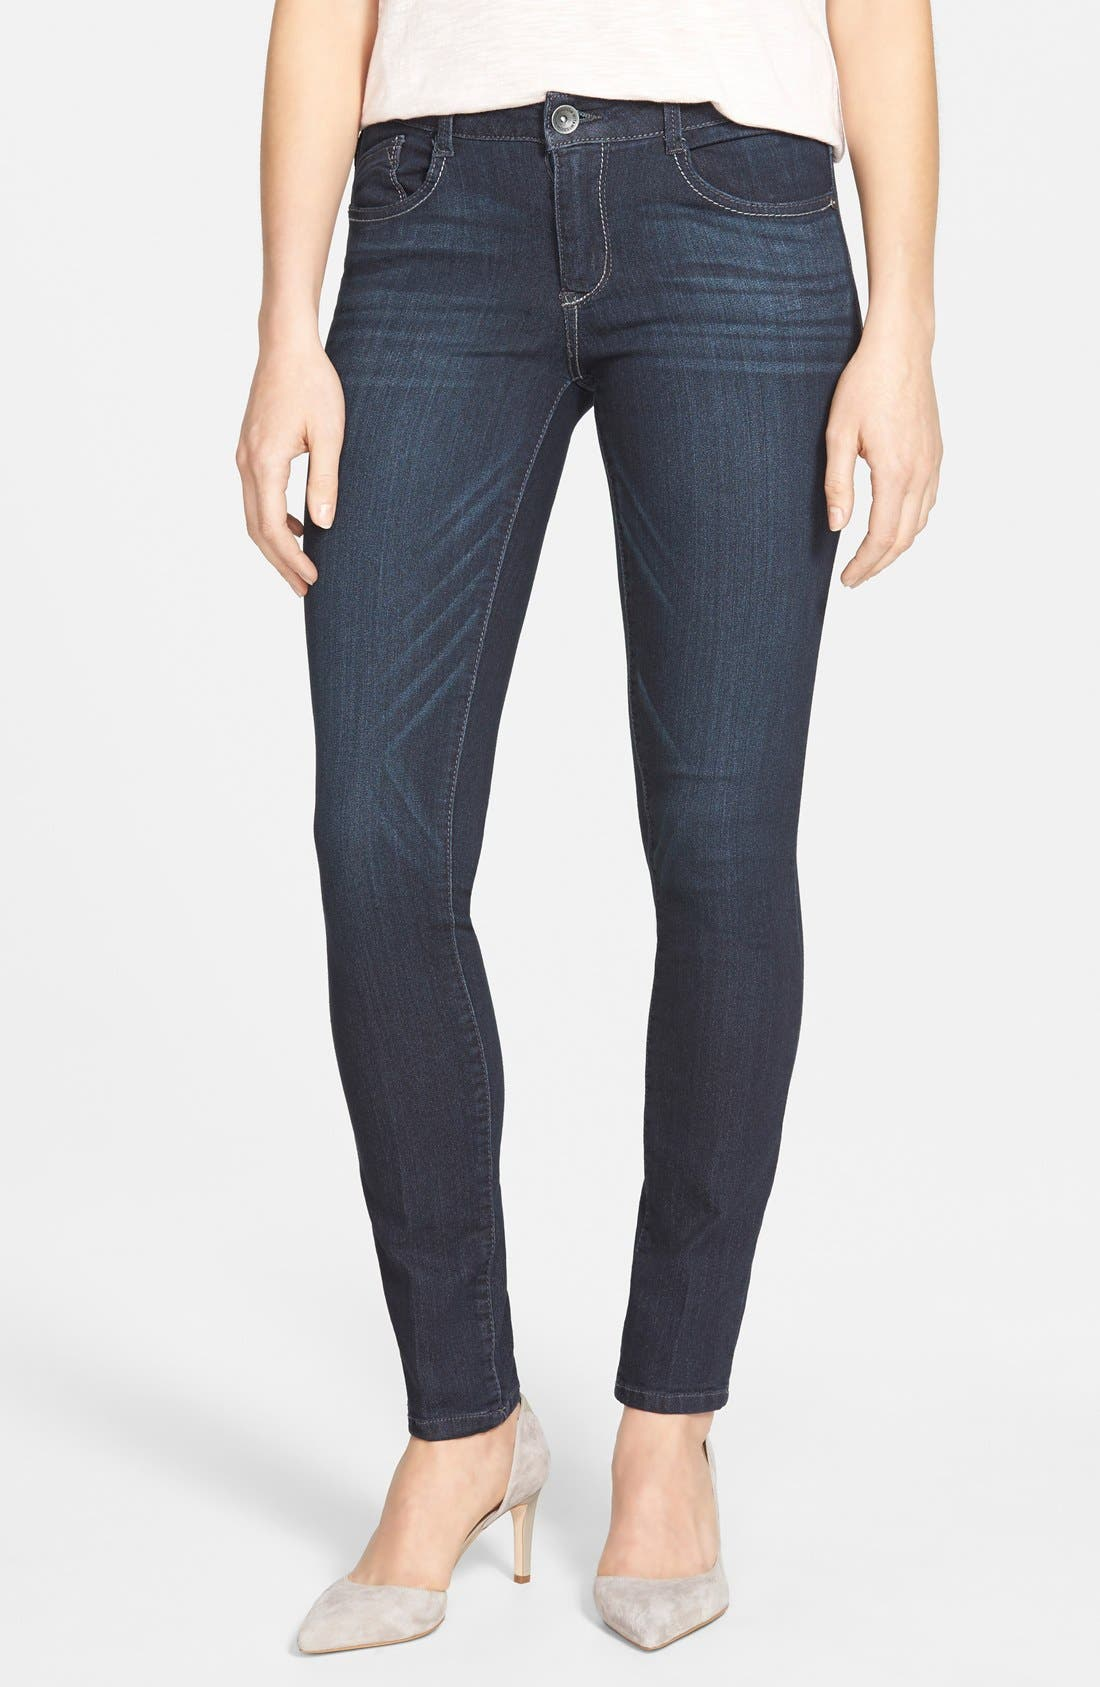 Wit & Wisdom Super Smooth Stretch Denim Skinny Jeans (Dark Navy) (Regular & Petite) (Nordstrom Exclusive)